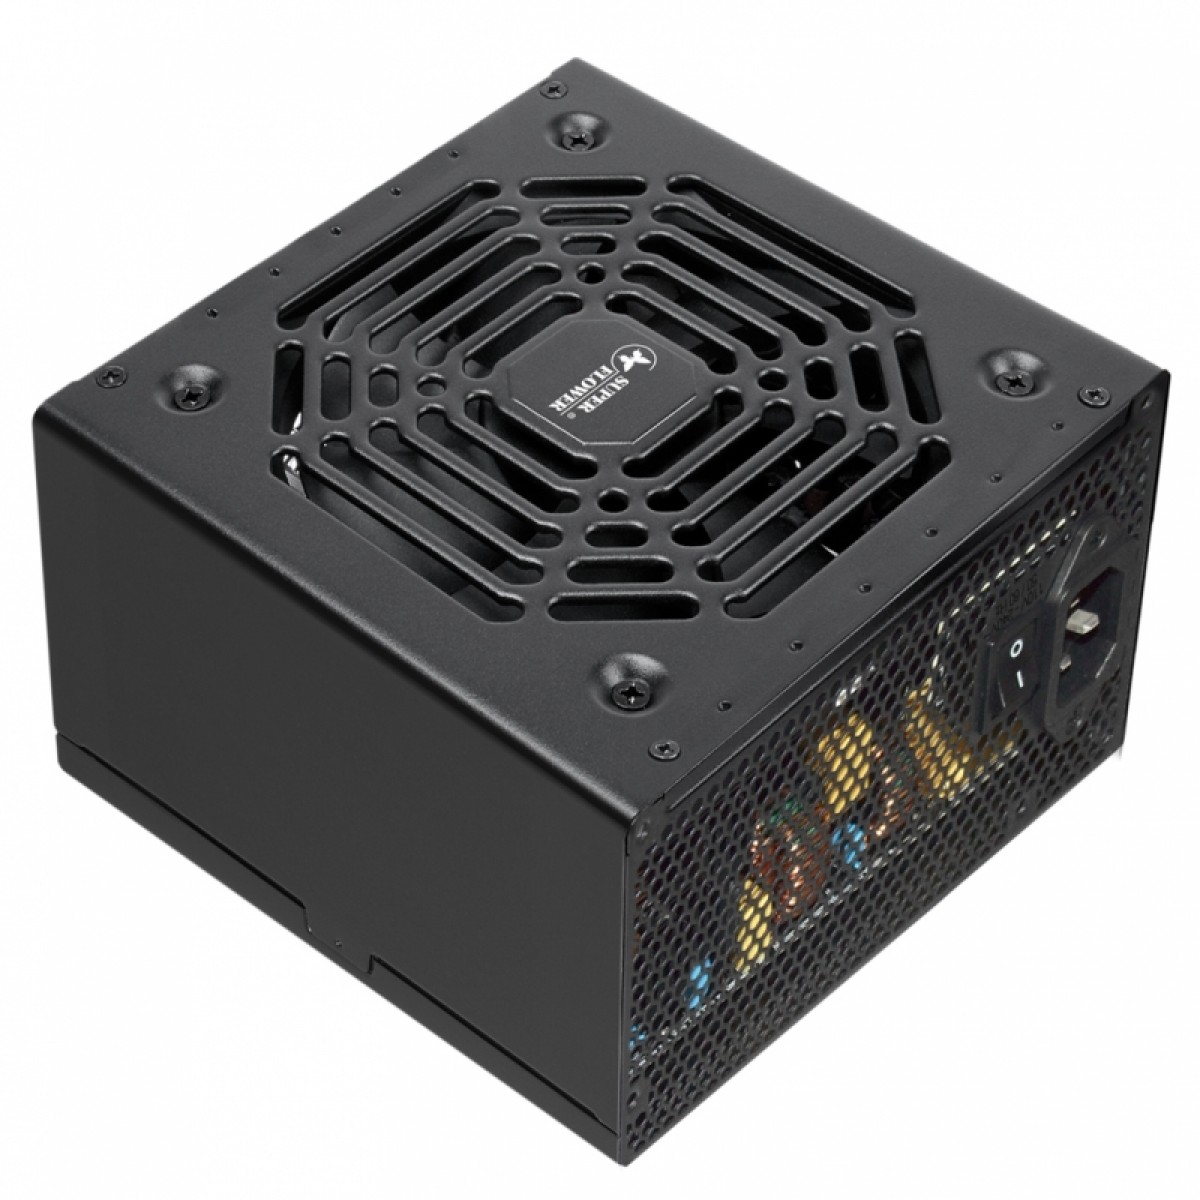 Fonte Super Flower LEGION HX 750W, 80 Plus Gold, PFC Ativo, SF-750P14XE(HX)